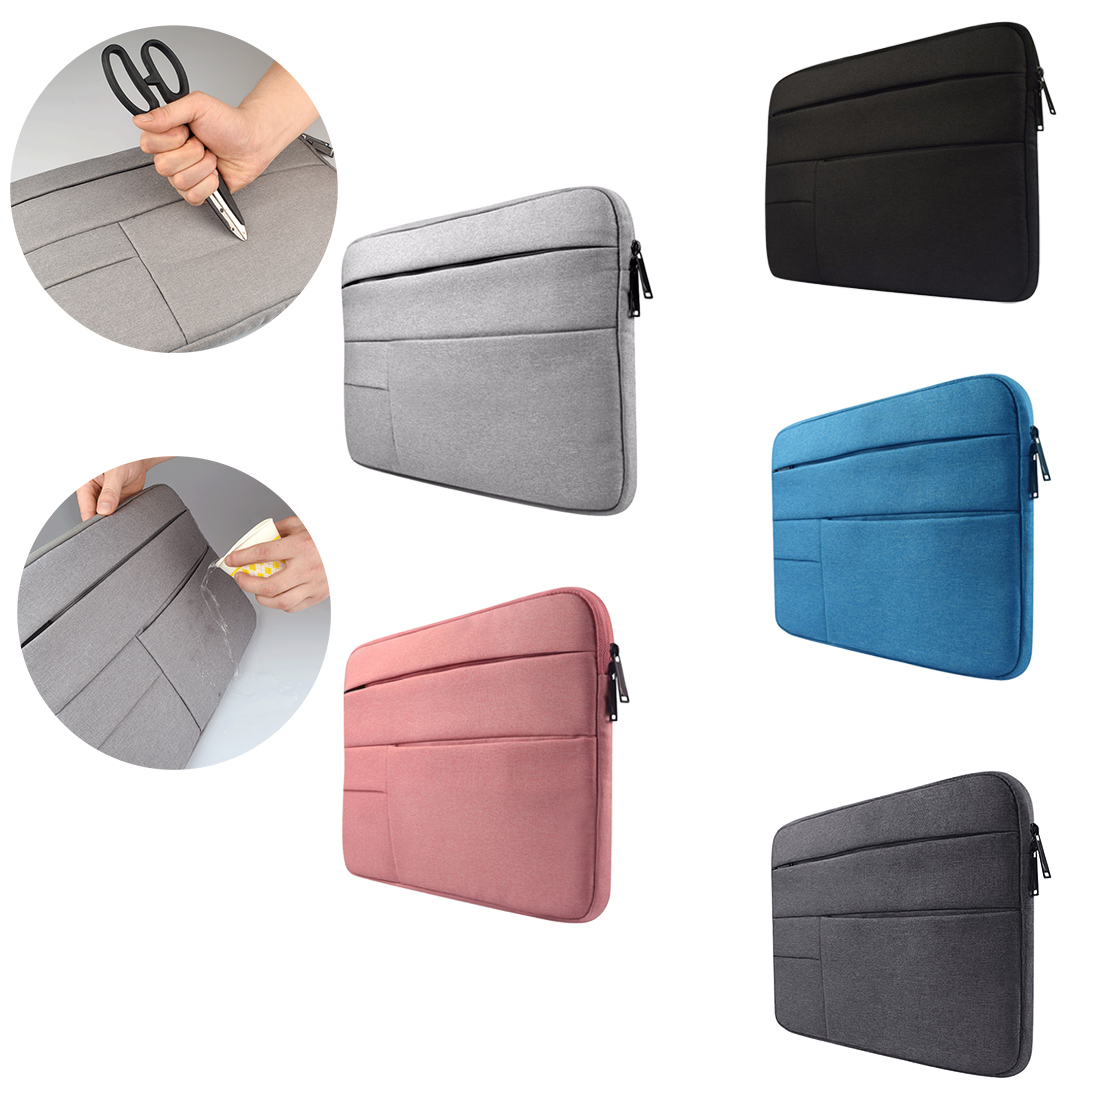 <font><b>Laptop</b></font> Sleeve bag for Dell <font><b>Asus</b></font> Lenovo HP Acer Computer 11 12 13 14 15 inch for Macbook Air Pro Notebook <font><b>15.6</b></font> Sleeve <font><b>Case</b></font> Simple image